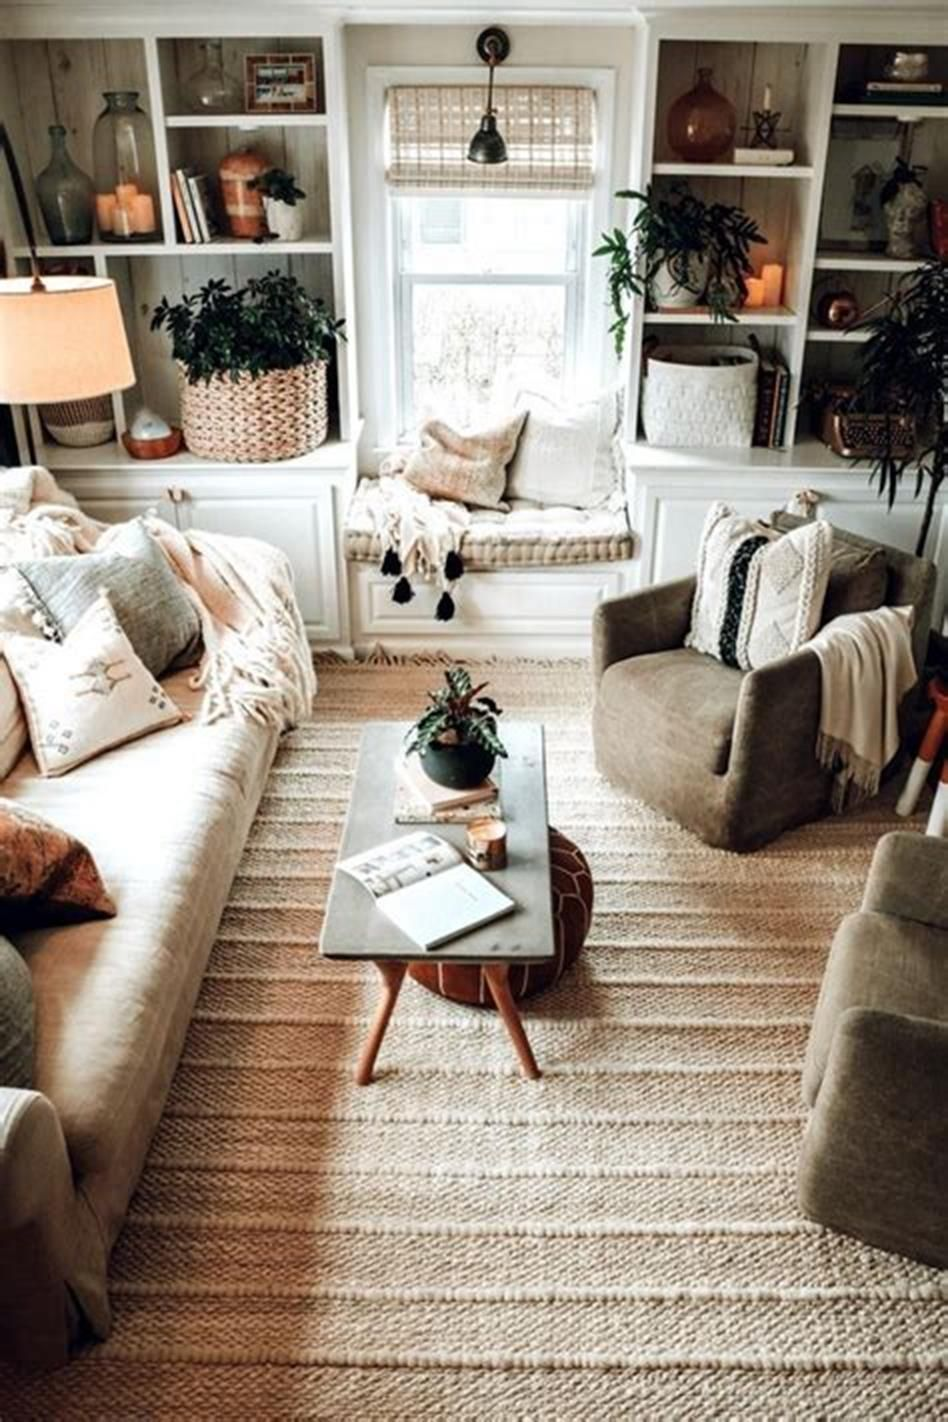 26 Amazing Simple Decorating Ideas For Small Living Room 2020 Smalllivingroom Designideas Small Living Rooms Small Living Room Living Room Designs